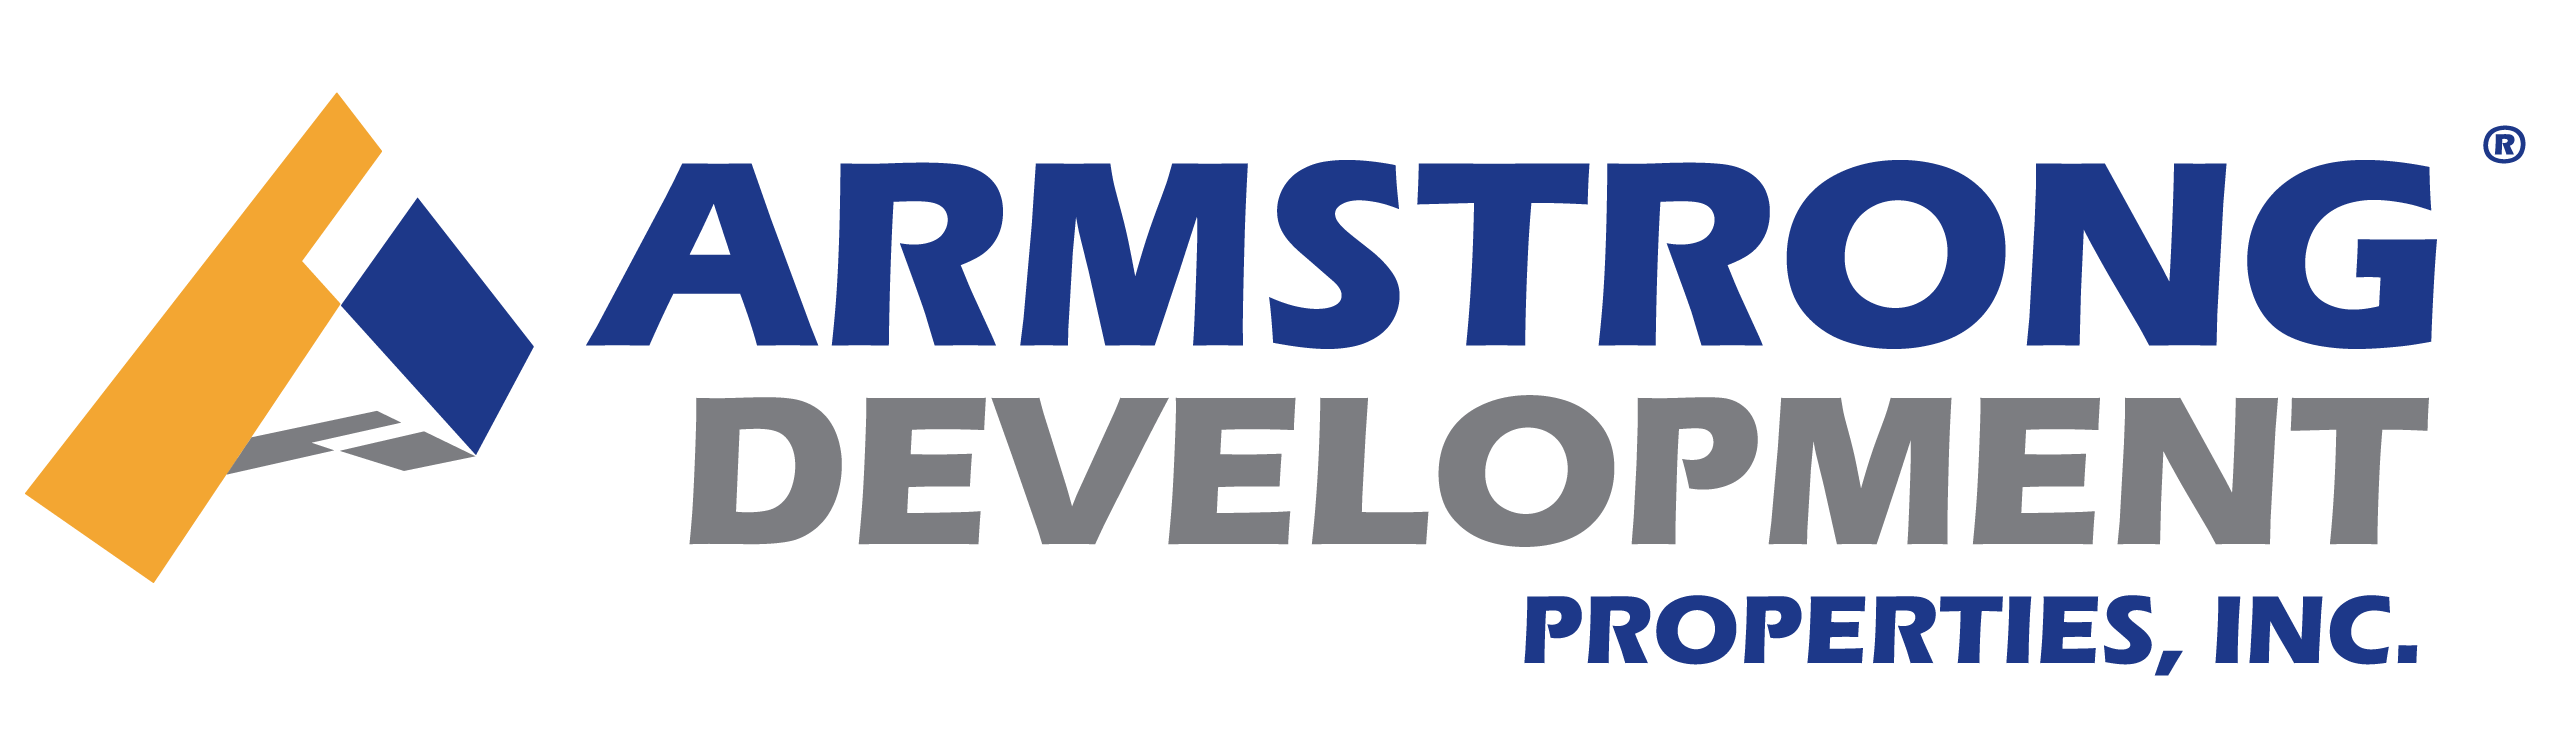 Armstrong Development Properties, Inc.